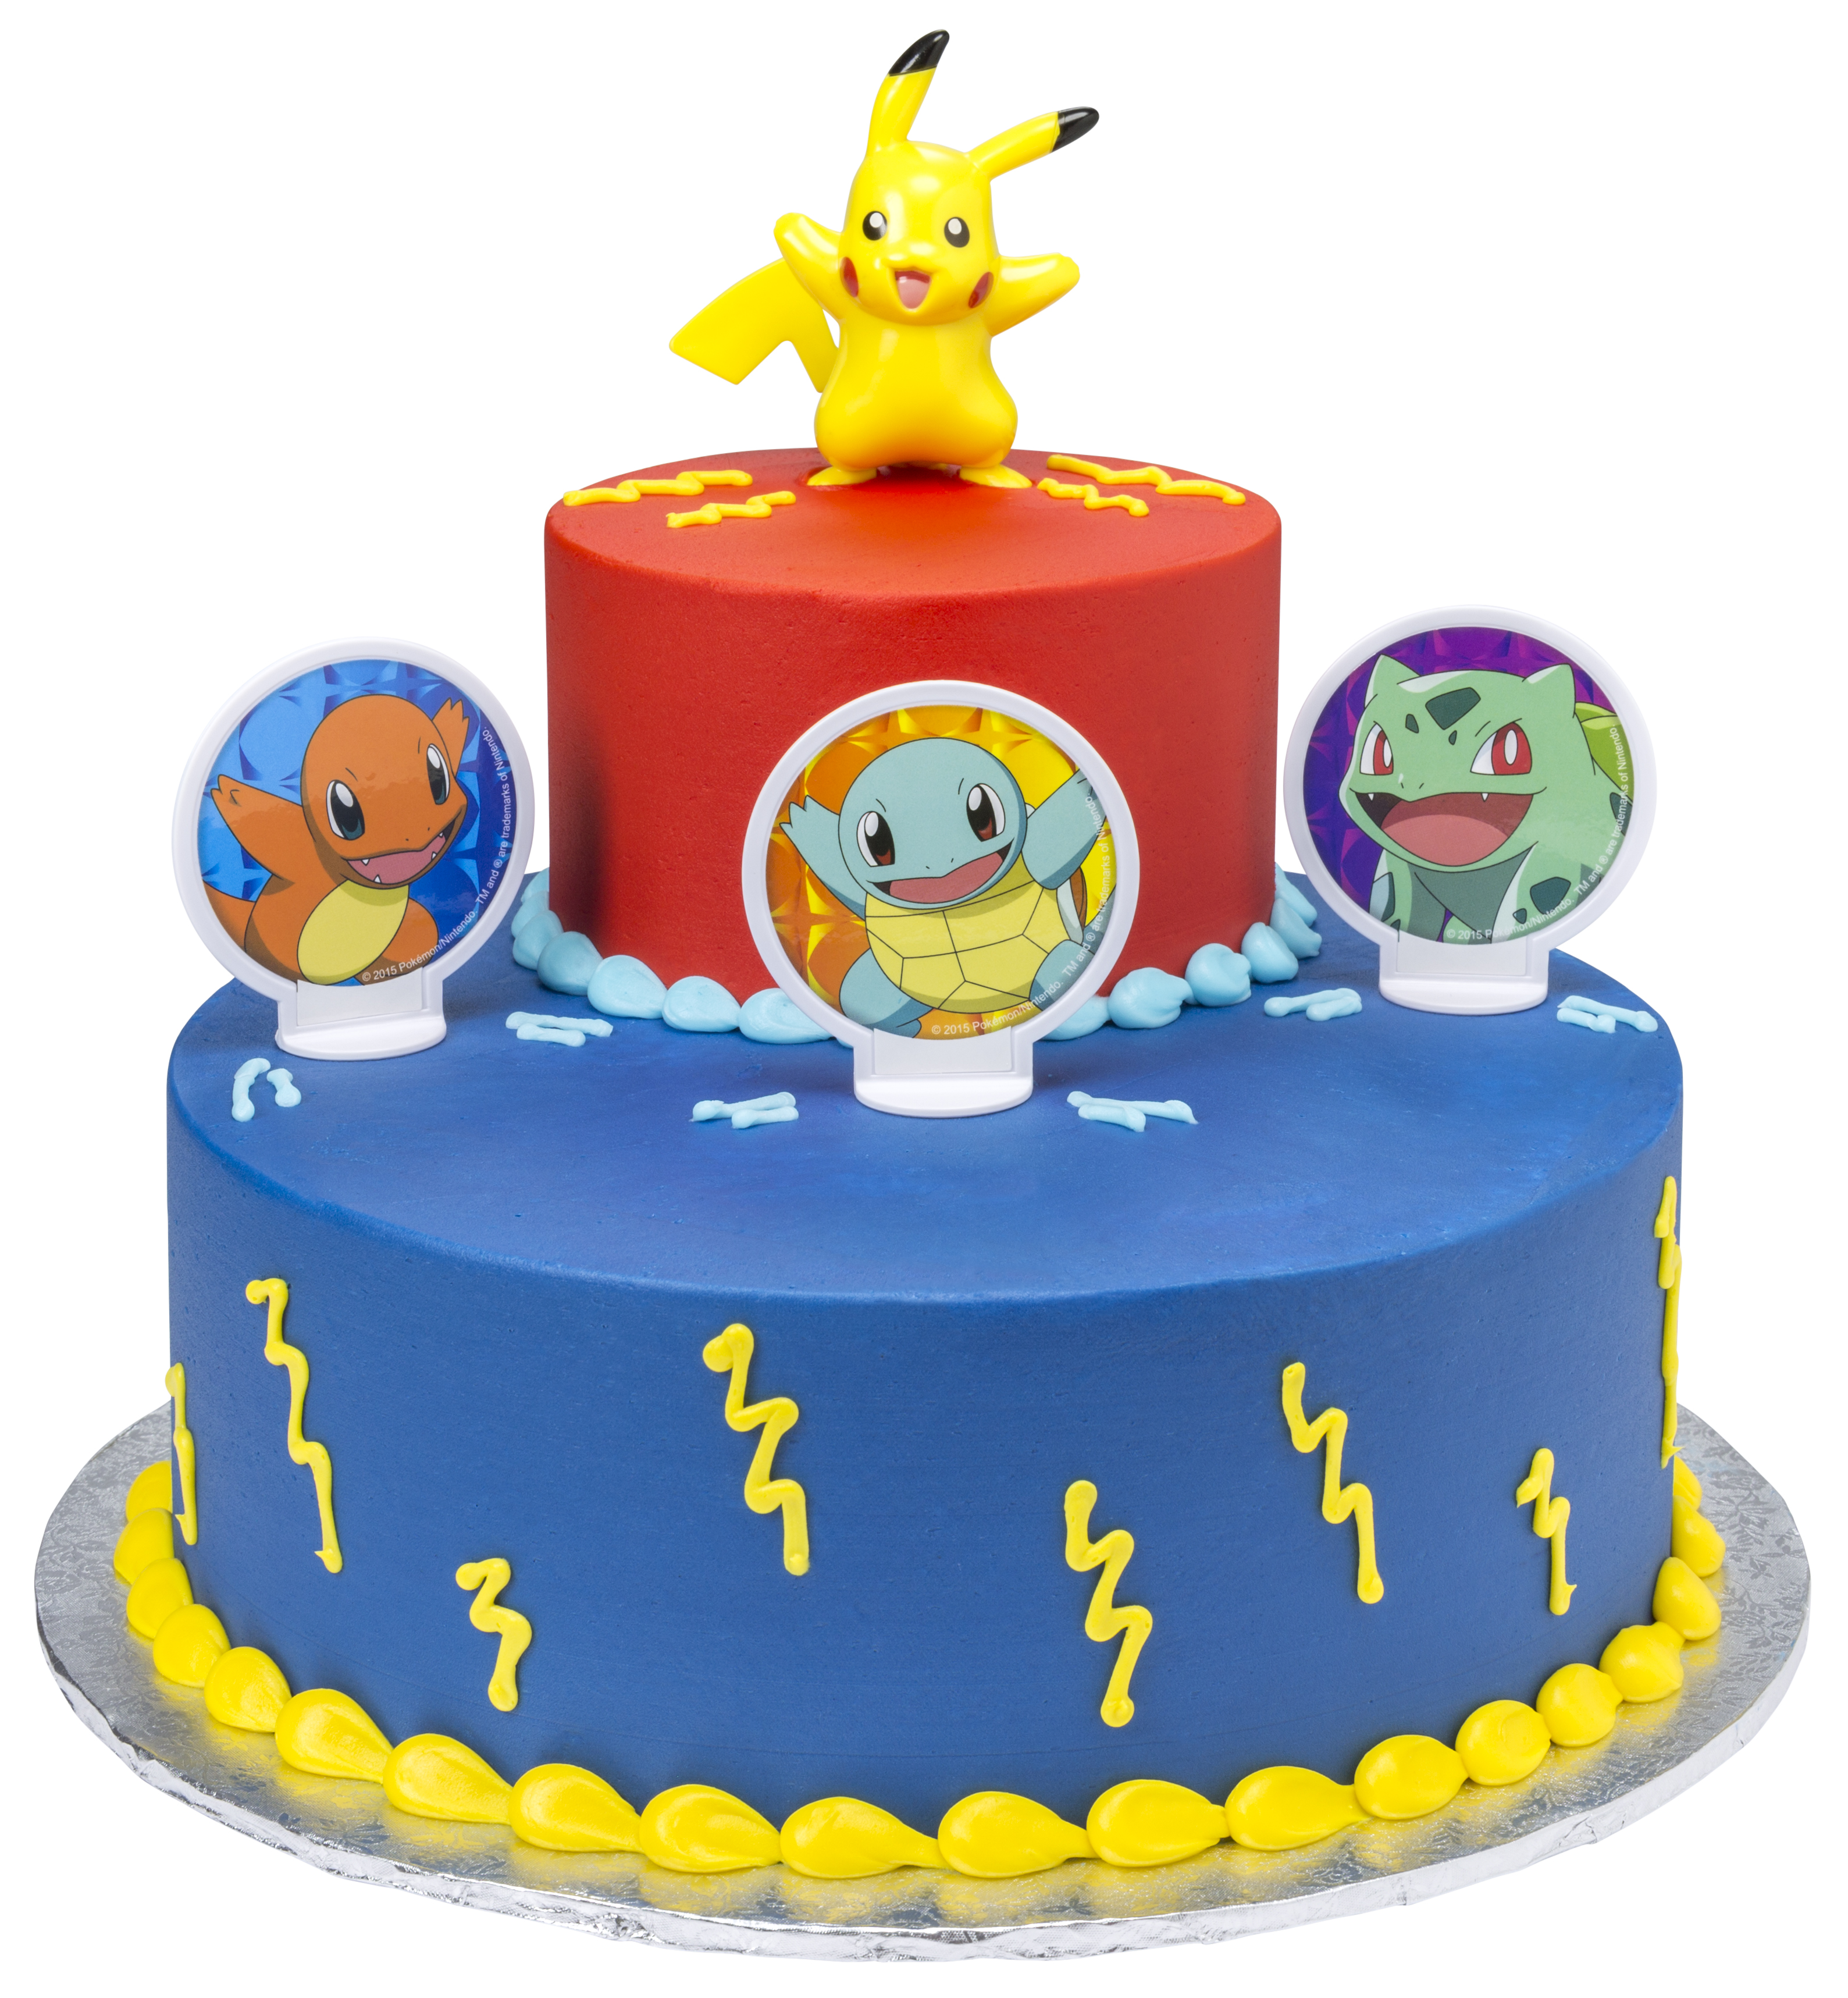 Terrific Pokemon Light Up Pikachu Two Tier Cake Walmart Com Walmart Com Birthday Cards Printable Opercafe Filternl